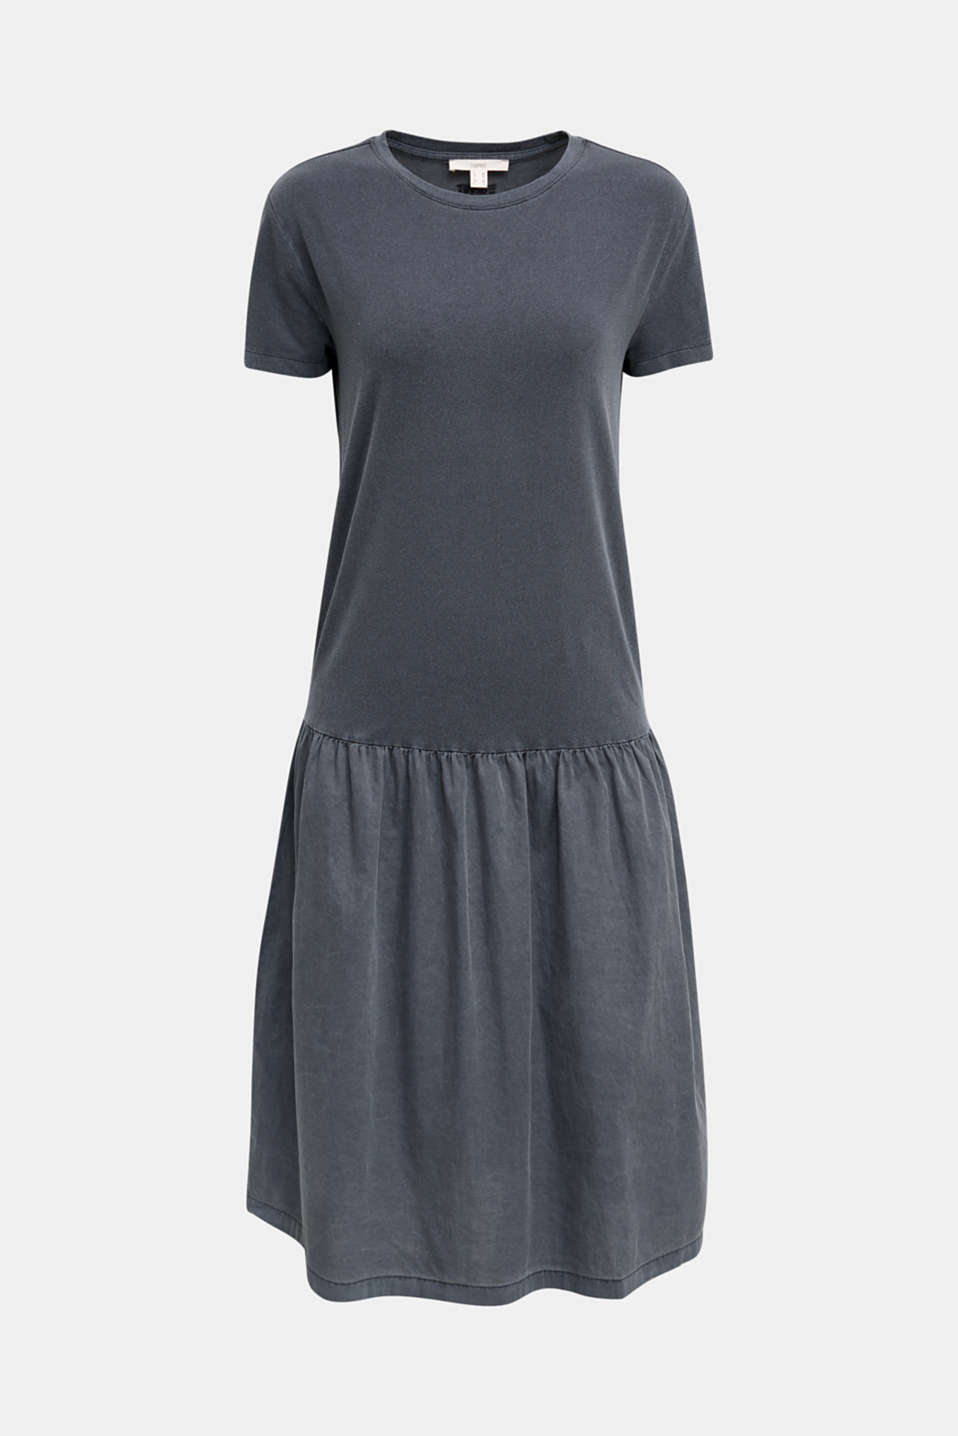 Midi dress made of jersey and cloth, GREY, detail image number 6